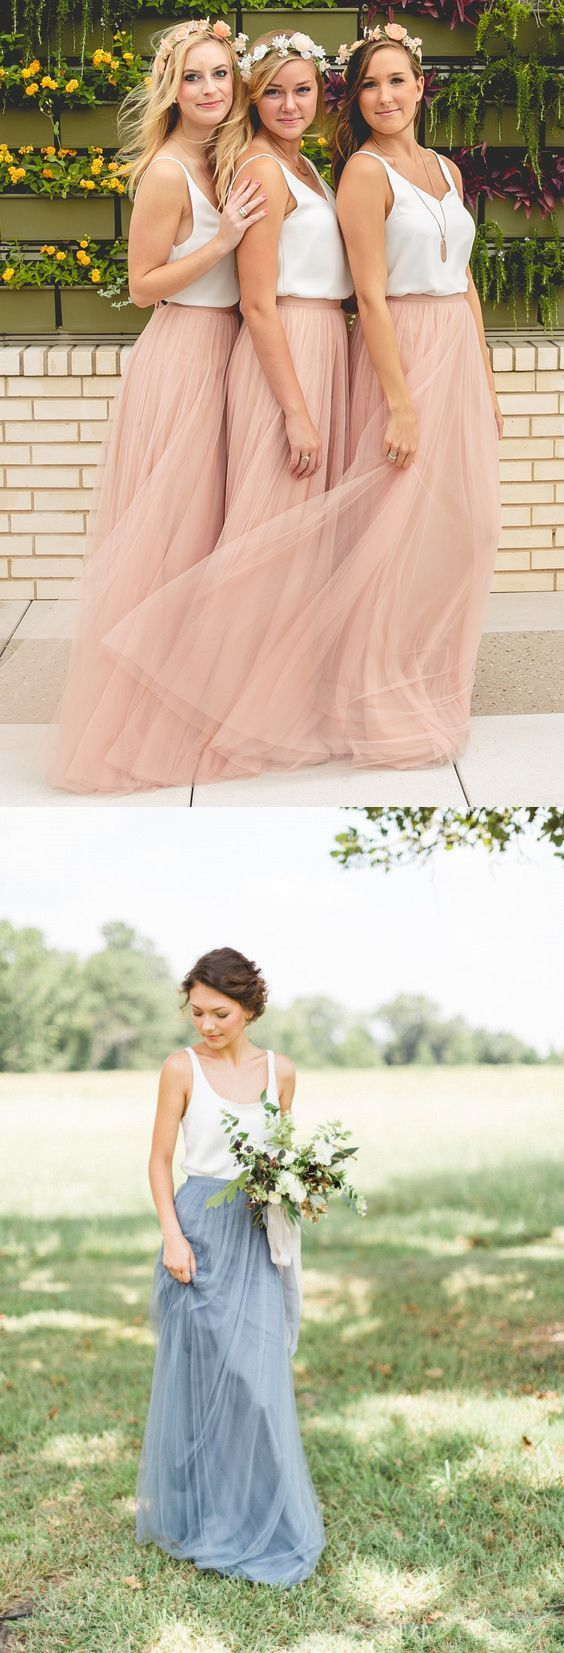 http://www.luulla.com/product/749174/blush-pink-bridesmaid-dresses-tulle-bridesmaid-dress-long-bridesmaid-dress-cheap-bridesmaid-dress-s